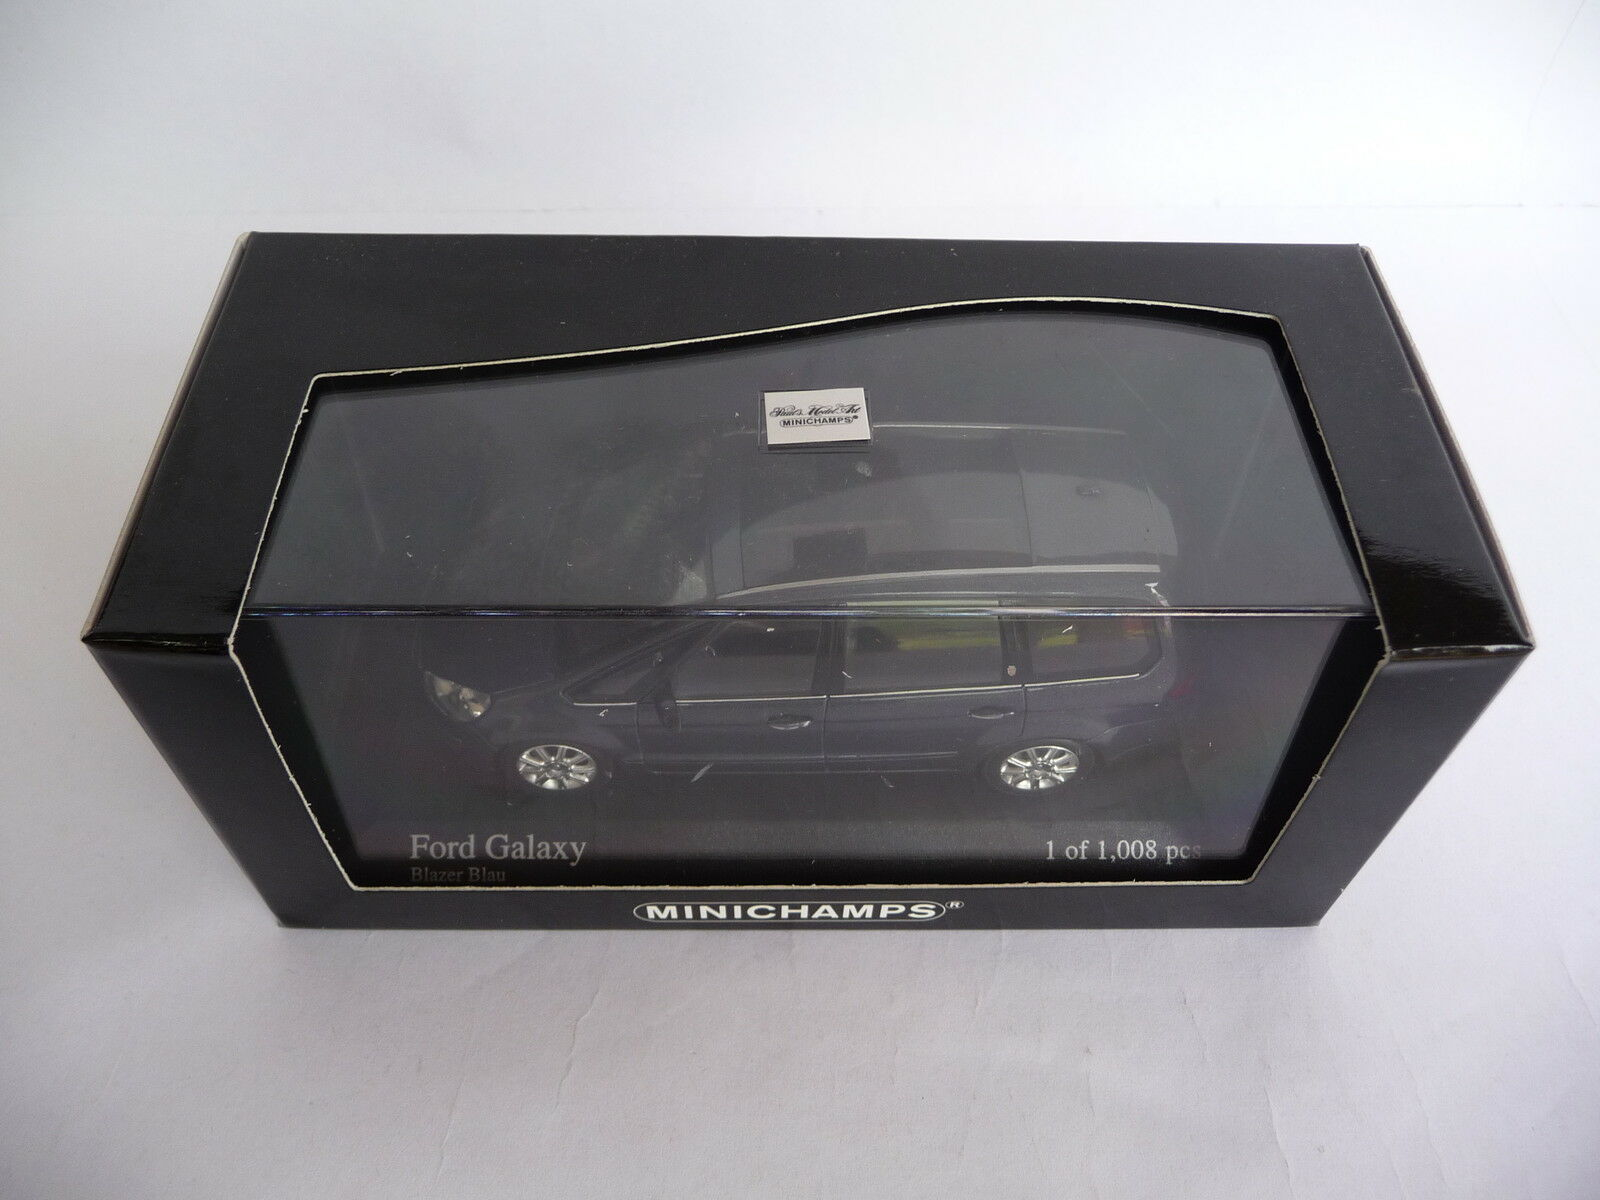 Minichamps 1 43 Ford Galaxy 2006 bluee 085302